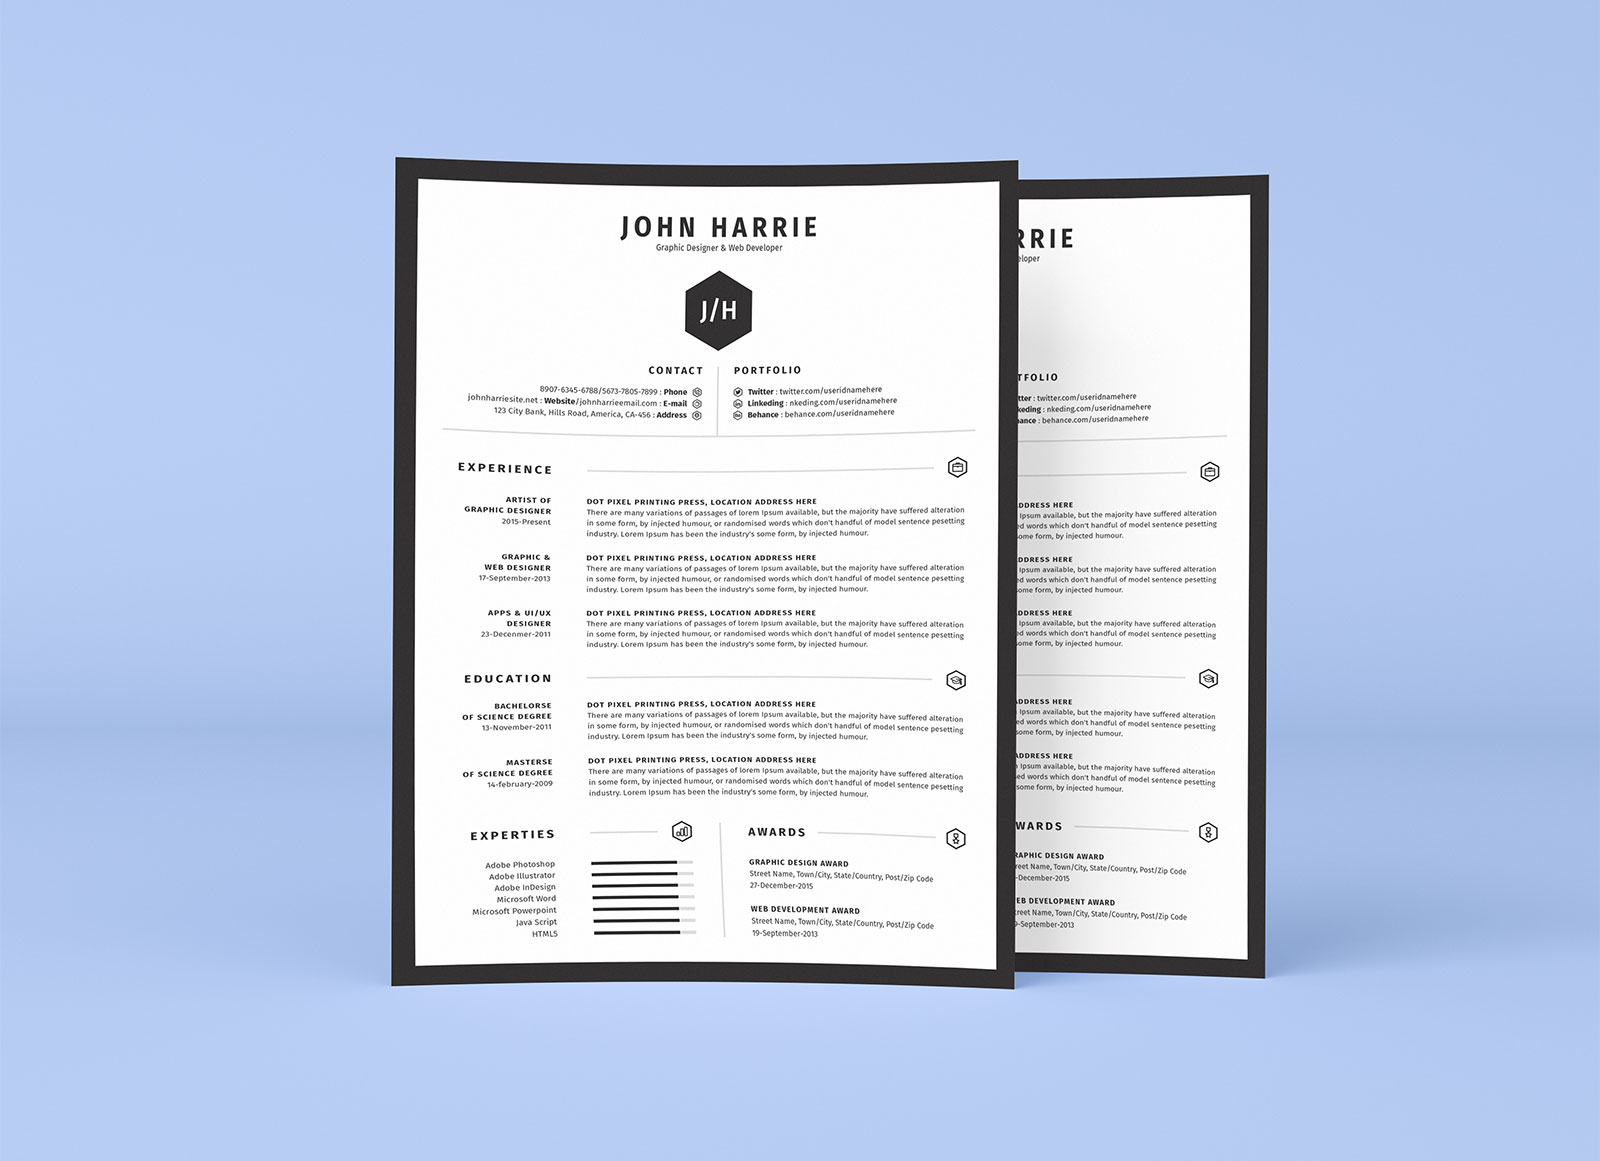 Fre-Clean-Resume-CV-+-Cover-Letter-Template-in-Word,-PSD-&-AI-1